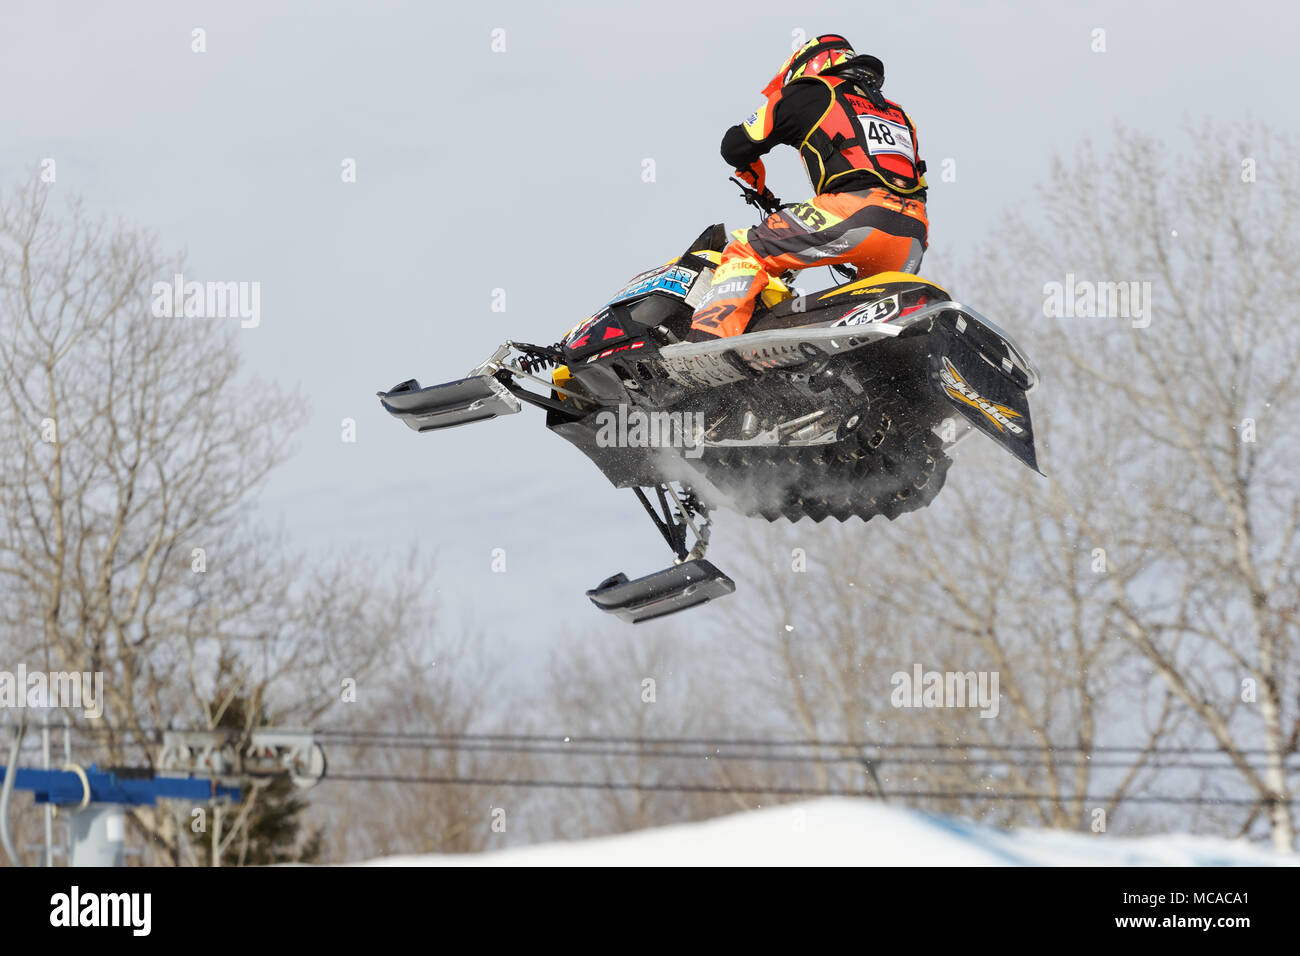 Quebec, Canada. 14th April 2018. La Reserve ski hill in Saint-Donat end their season with the Red Bull Sledhammers Championship. Credit: richard prudhomme/Alamy Live News - Stock Image